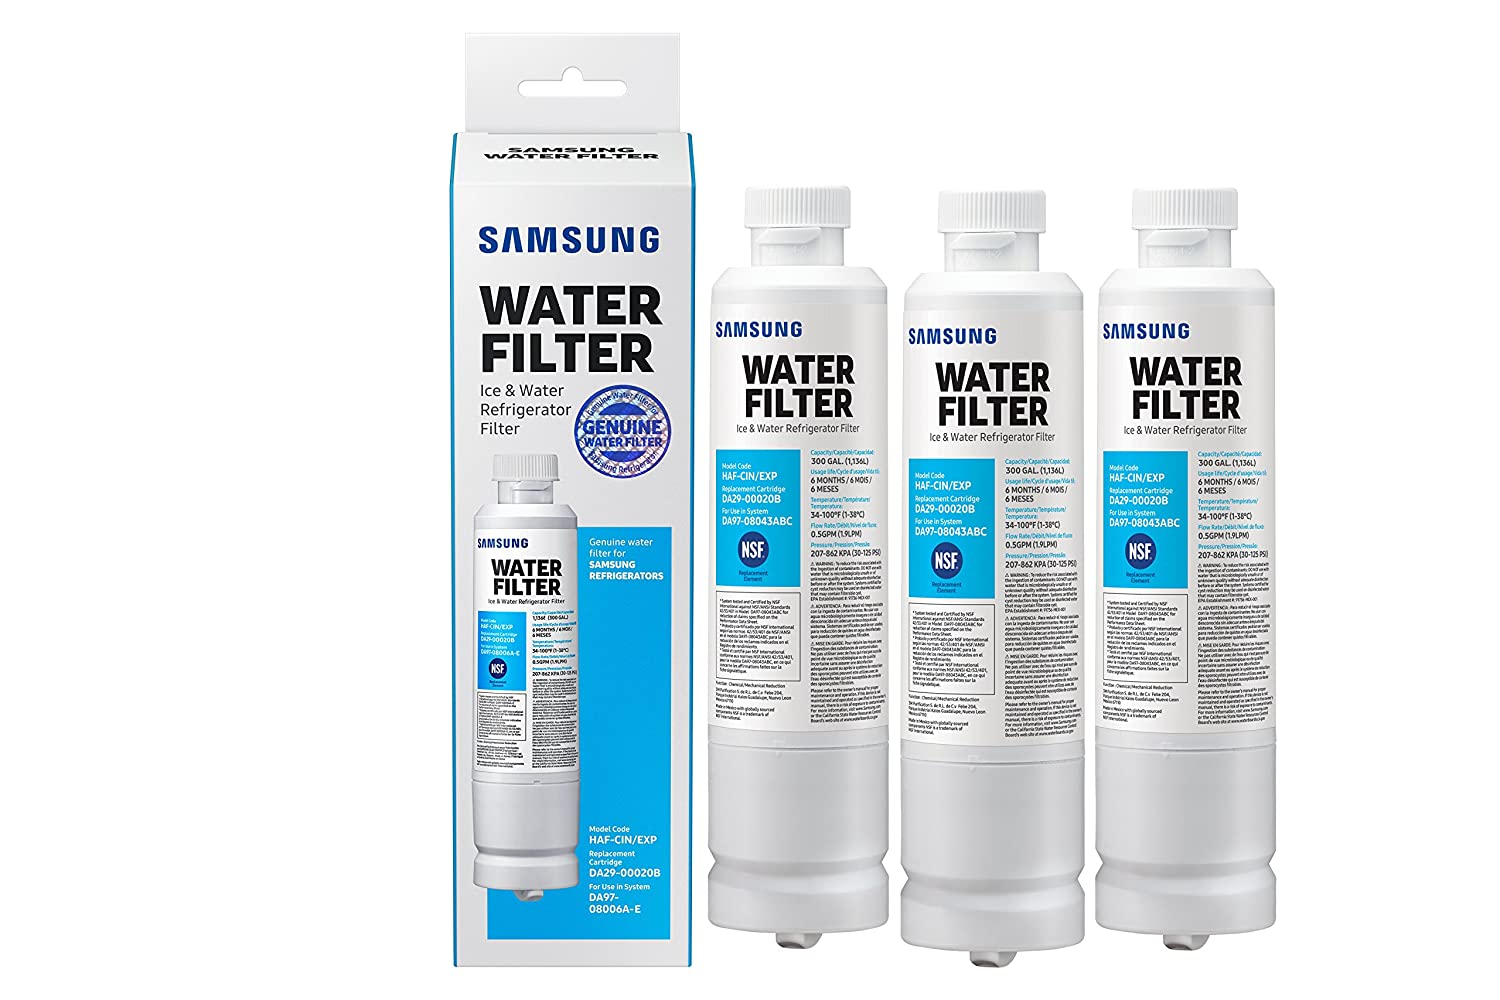 Samsung Genuine DA29-00020B Refrigerator Water Filter, 3 Pack